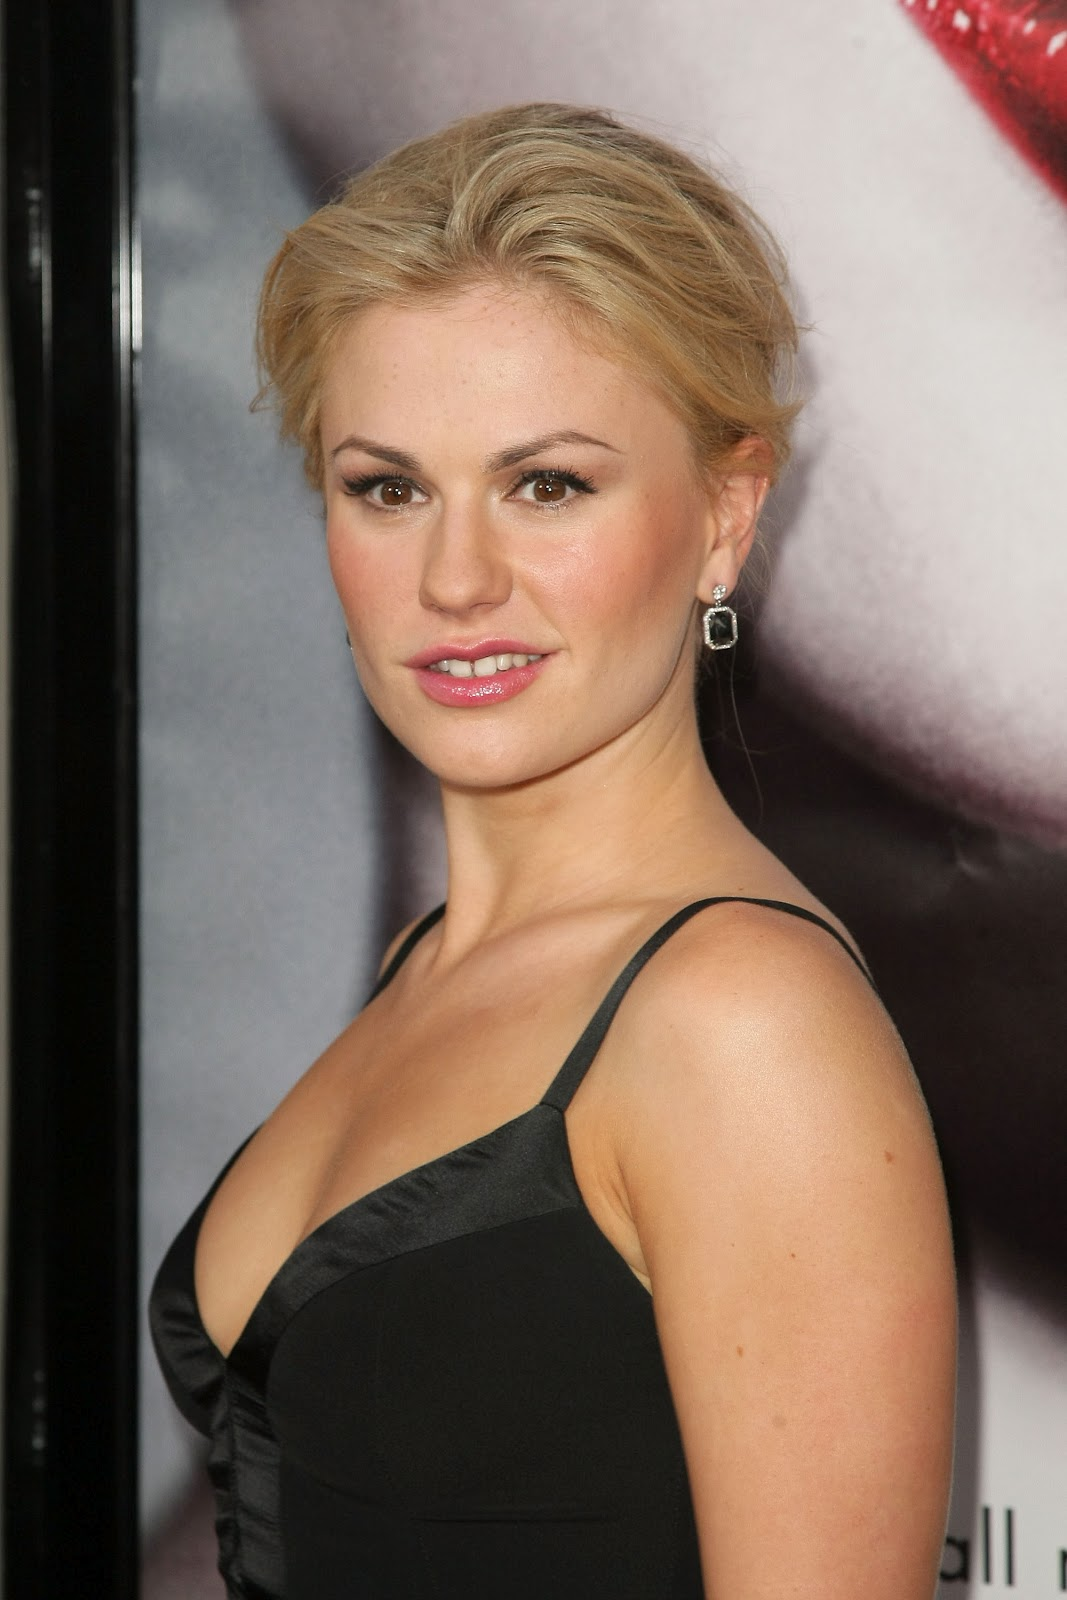 Cleavage Anna Paquin nude photos 2019